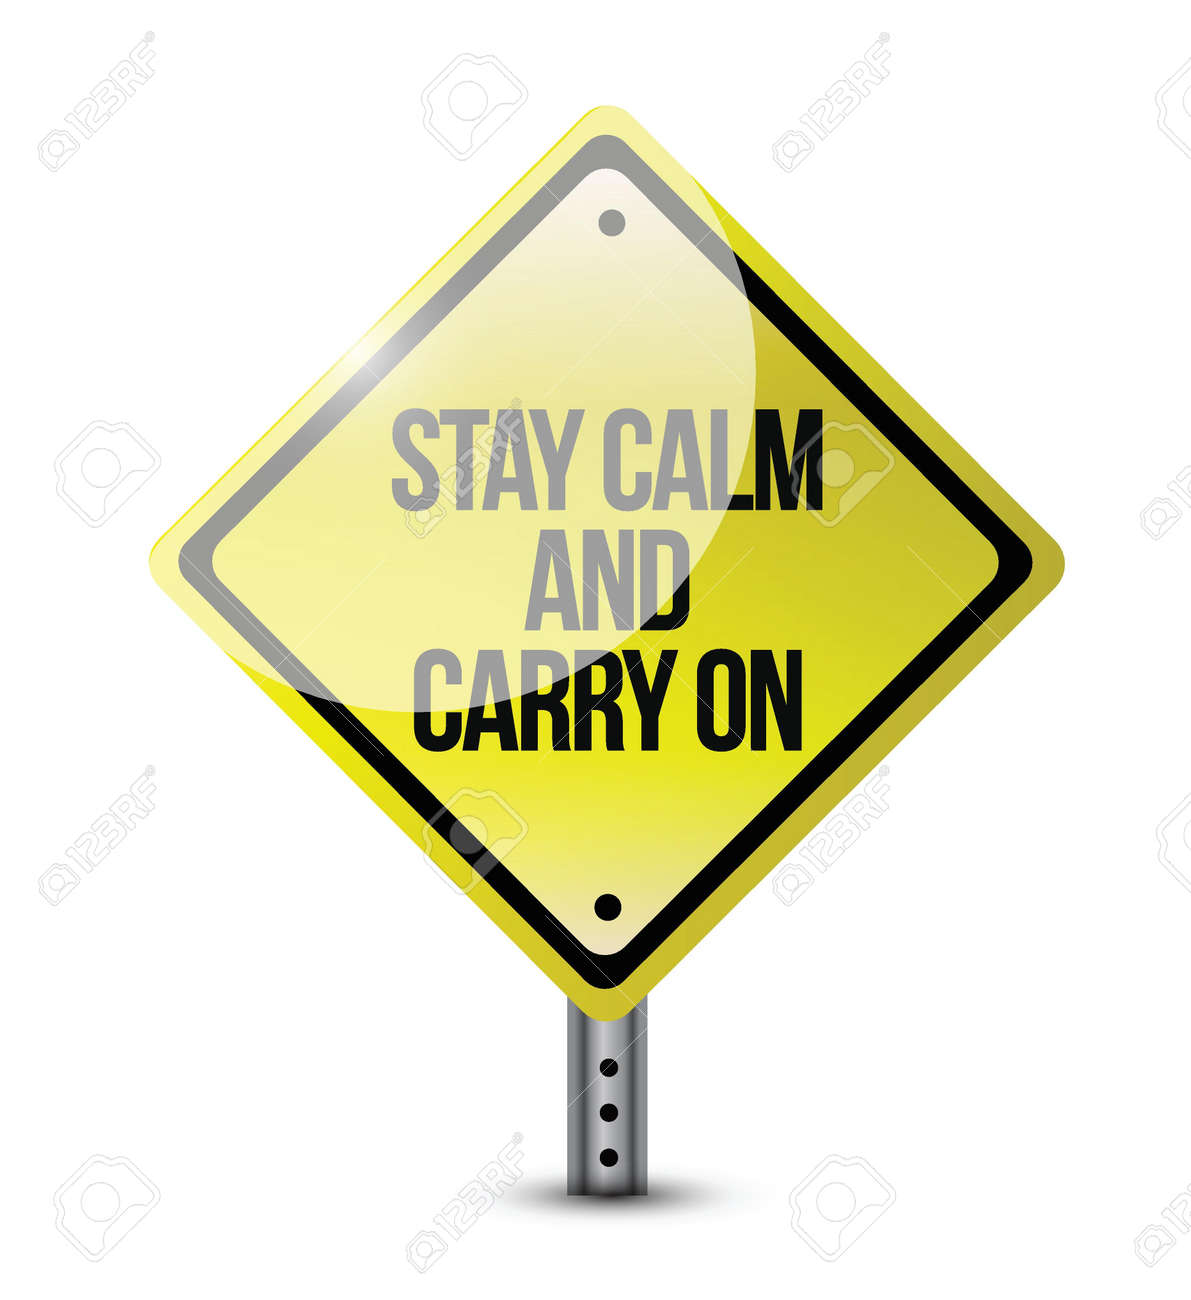 stay calm carry on road sign illustration design over white Stock Vector - 21314123